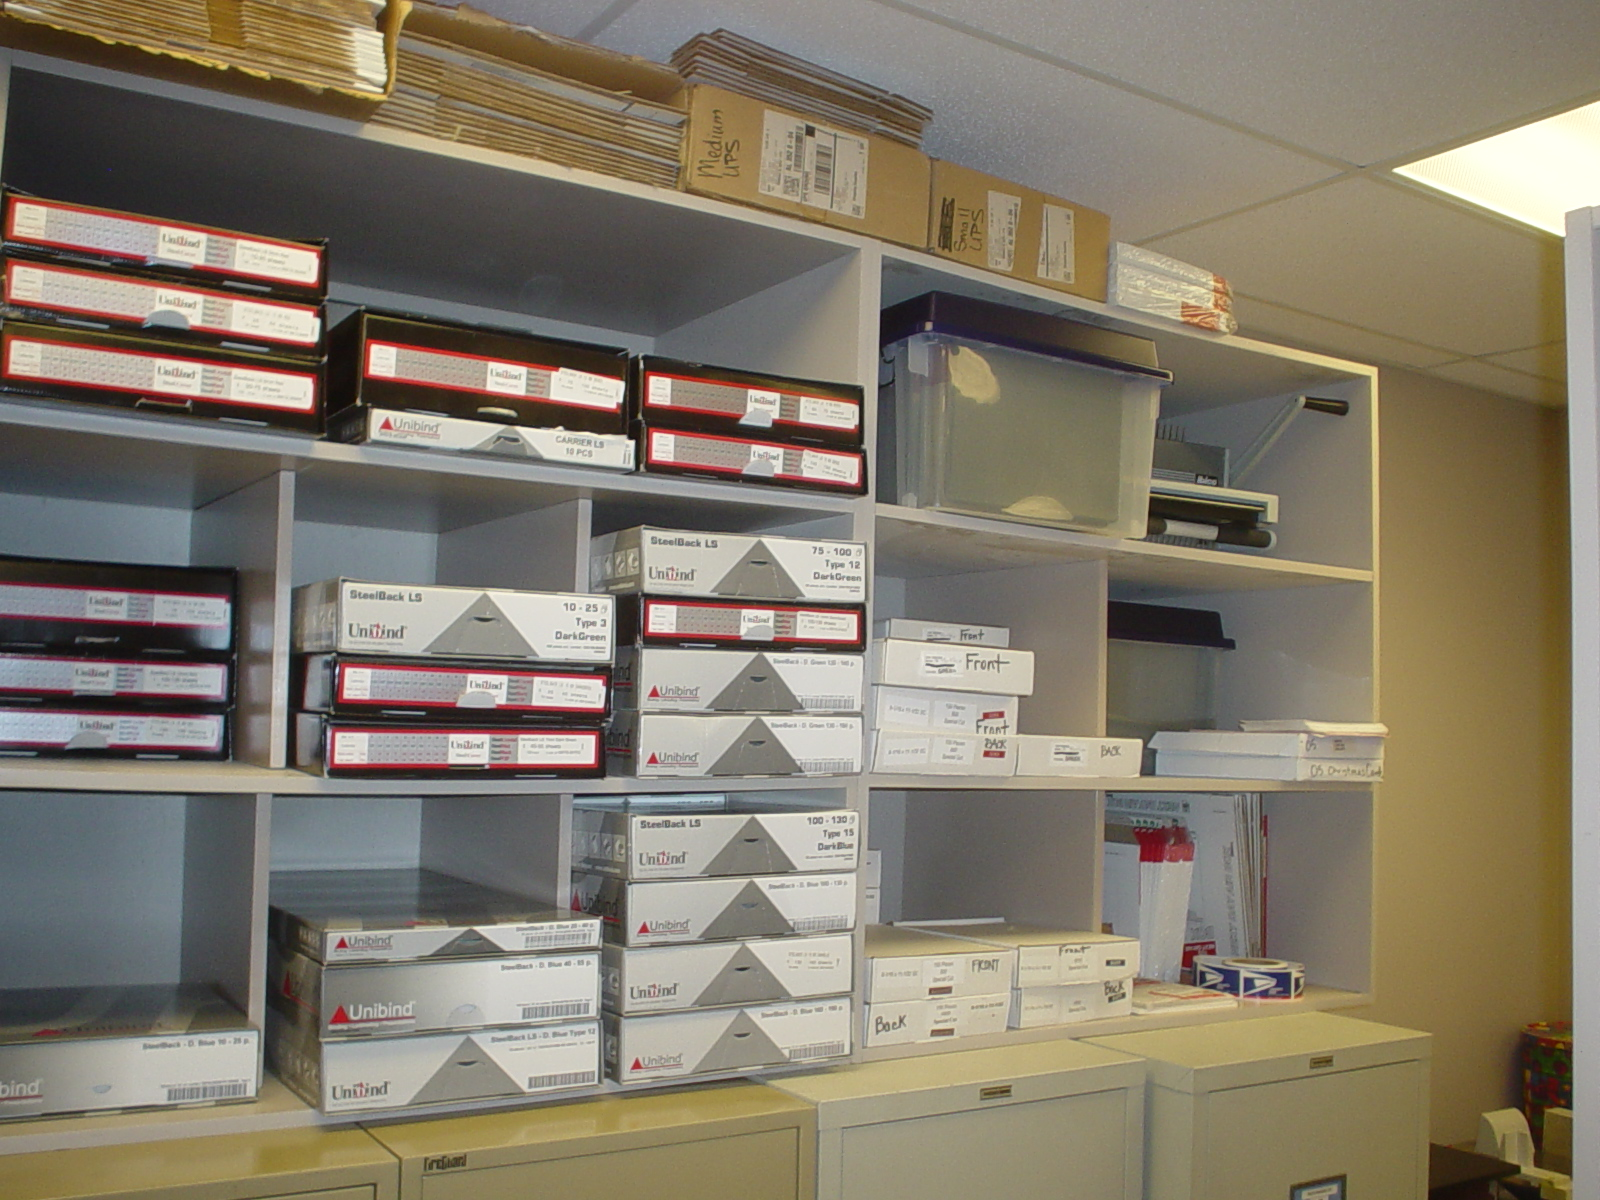 office storage space. Office Storage Space. Room. Custom Shelving In Room S Space O I